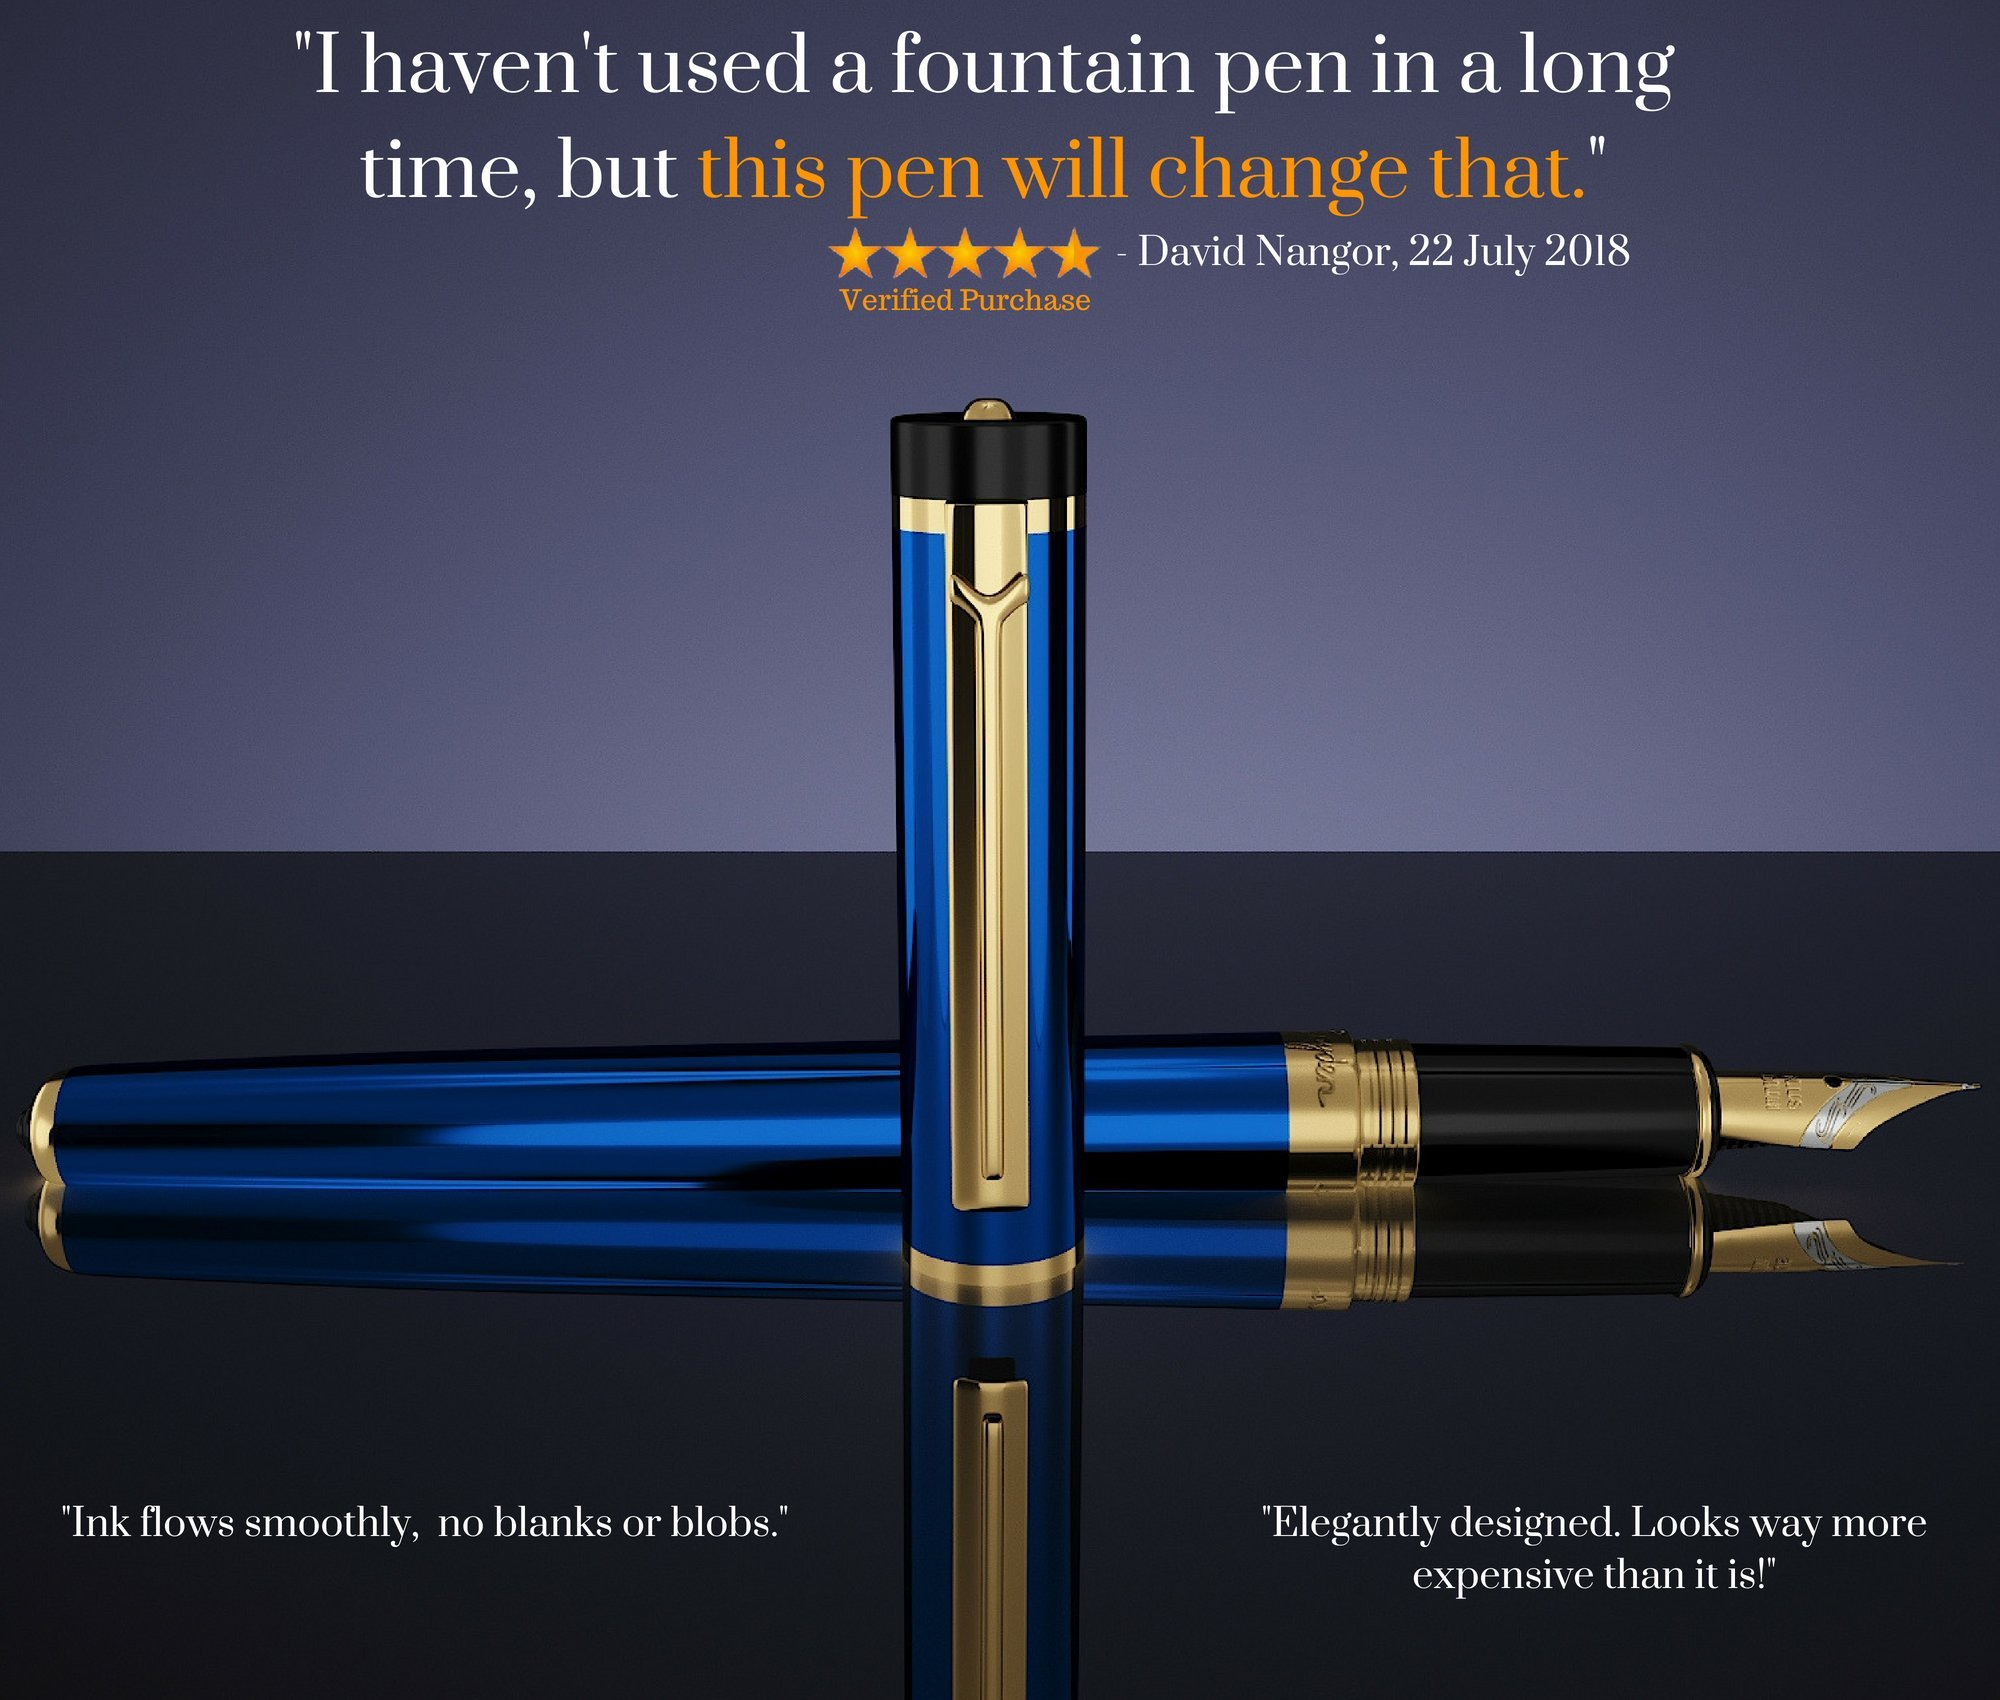 Dryden Luxury Fountain Pen [MYSTERIOUS BLUE] | Modern Classic Limited Edition | Executive Fountain Pens Set | Vintage Pens Collection | Business Gift Pen | Calligraphy | Ink Refill Converter by Dryden Designs (Image #2)